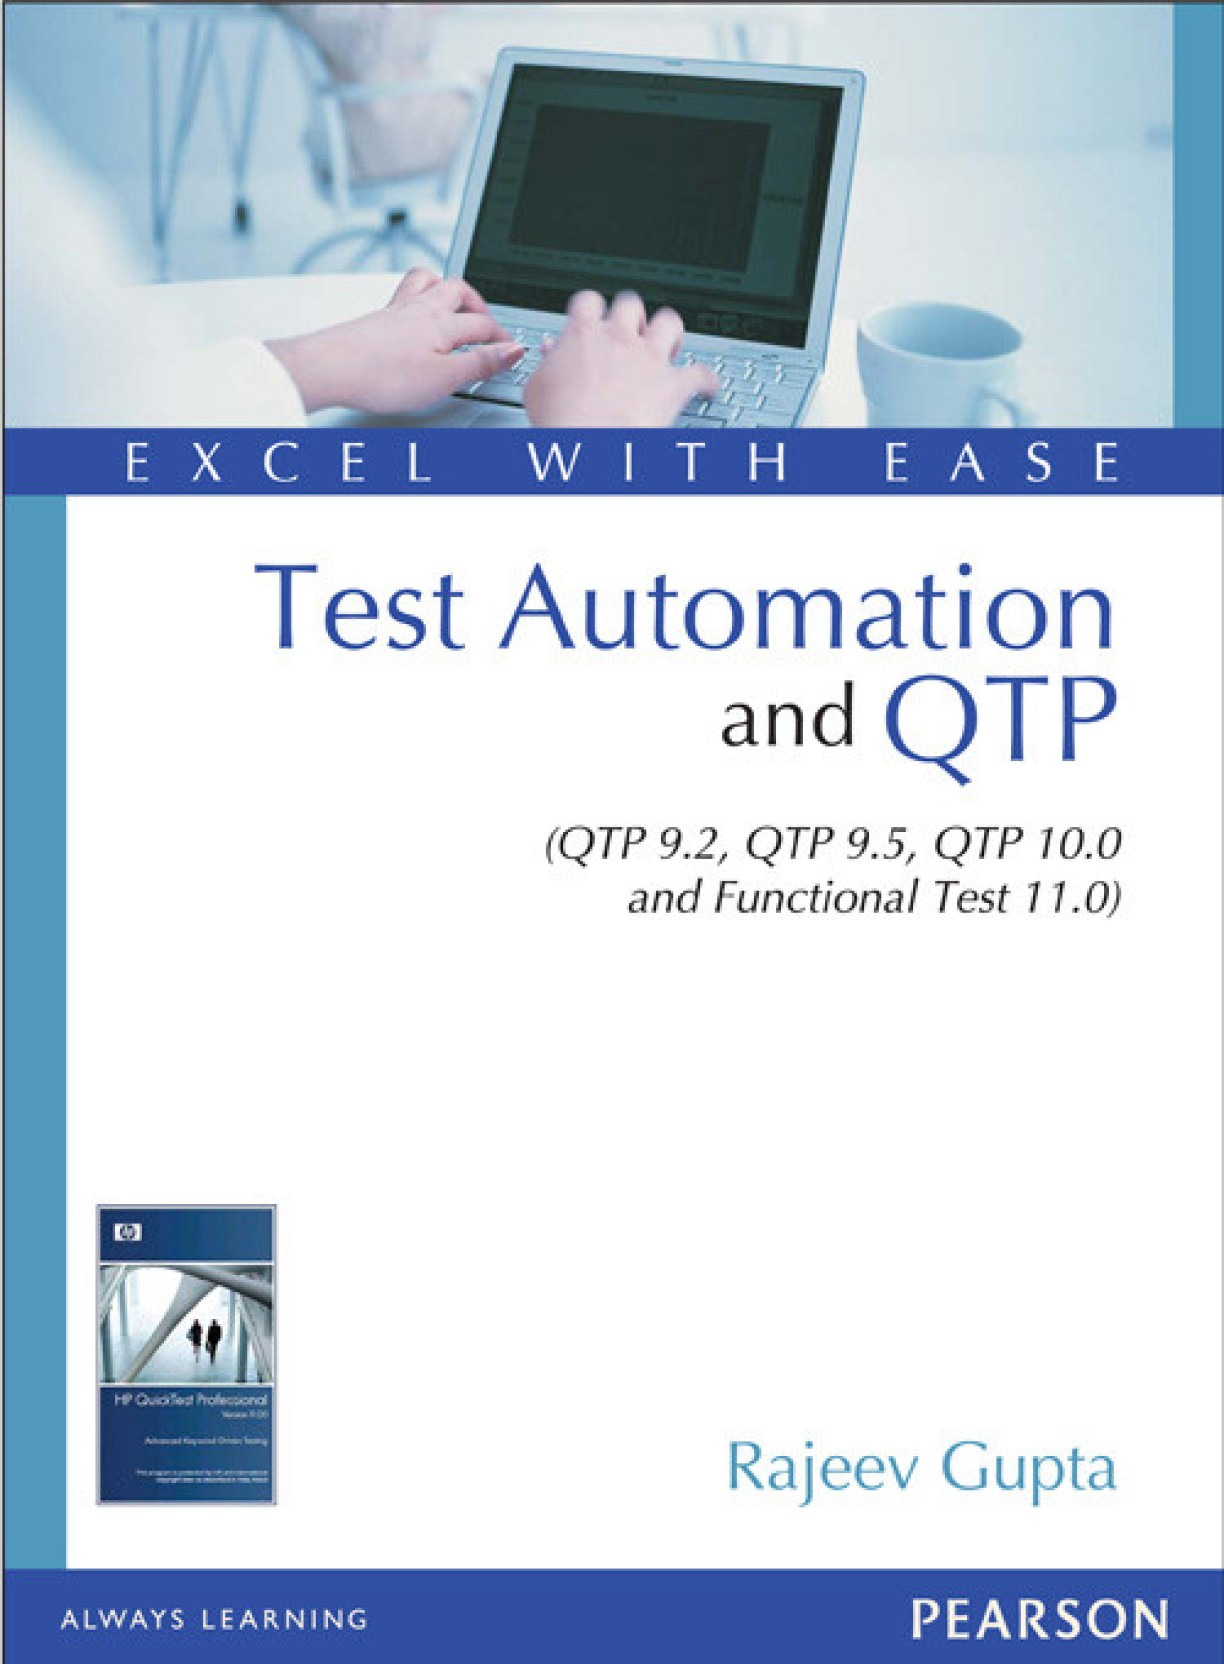 Guide to QuickTest Professional 10